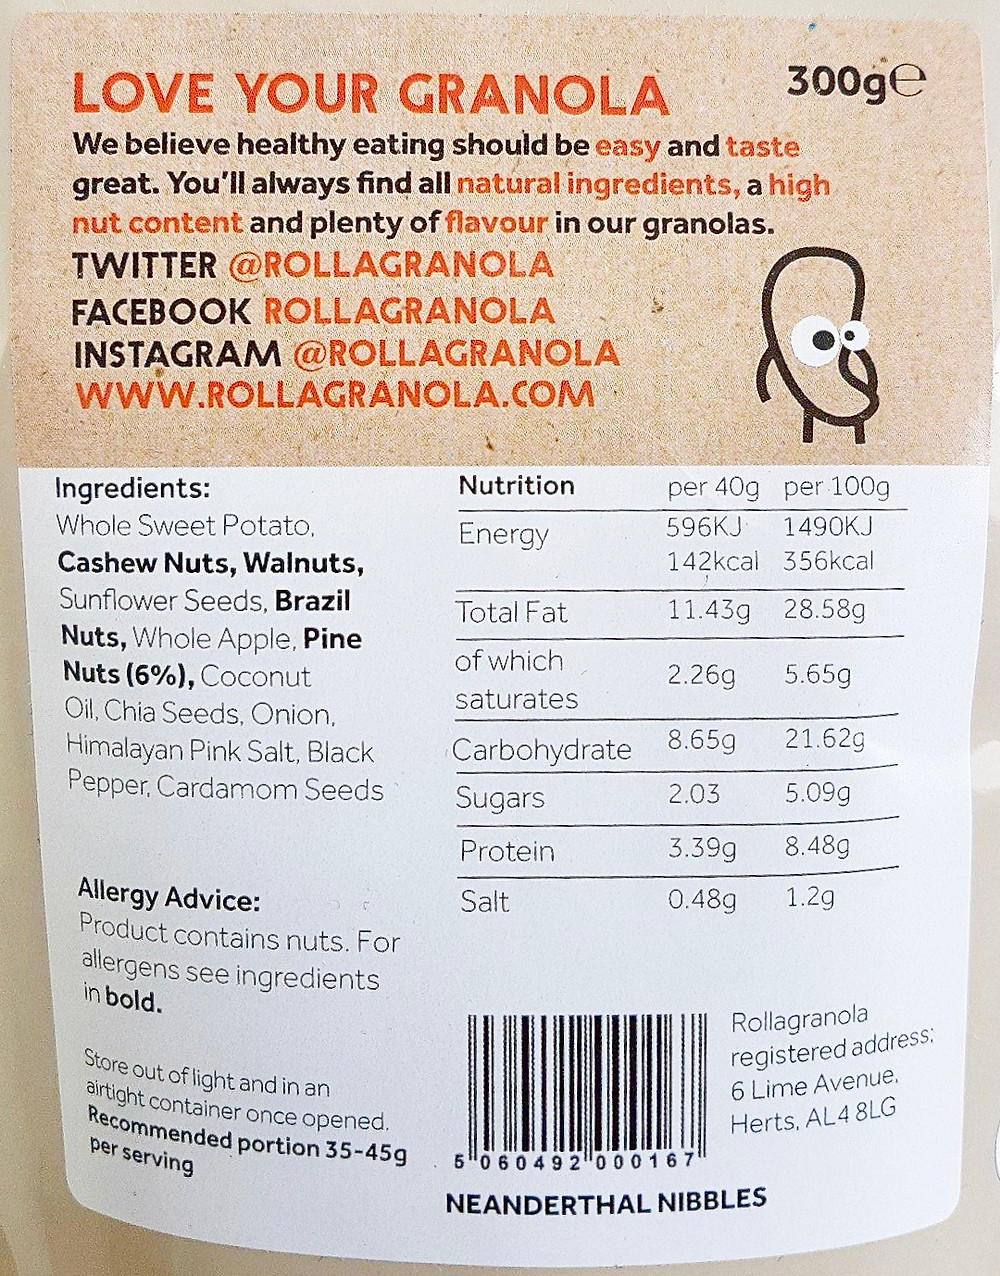 Rollagranola Neanderthal Nibbles Nutritional Values